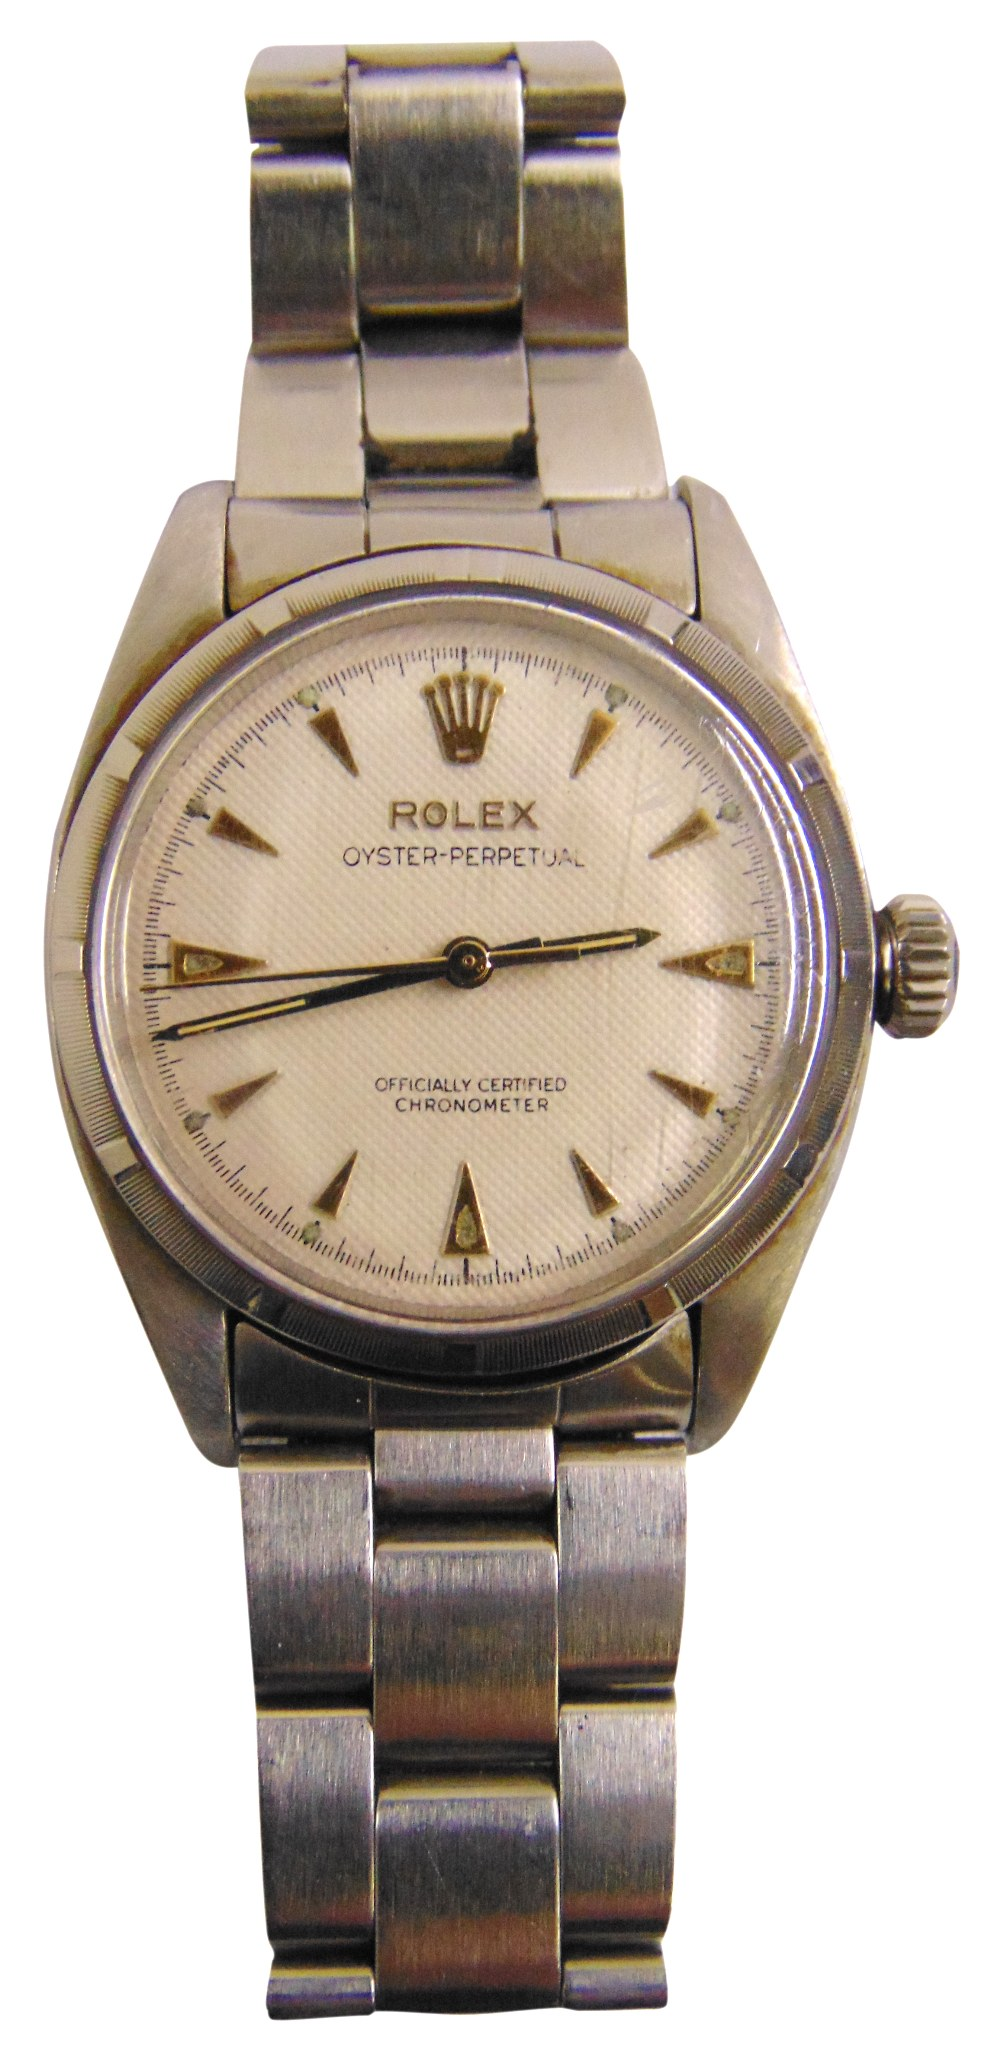 Lot 316 - Rolex Oyster Perpetual gentlemans stainless steel wristwatch